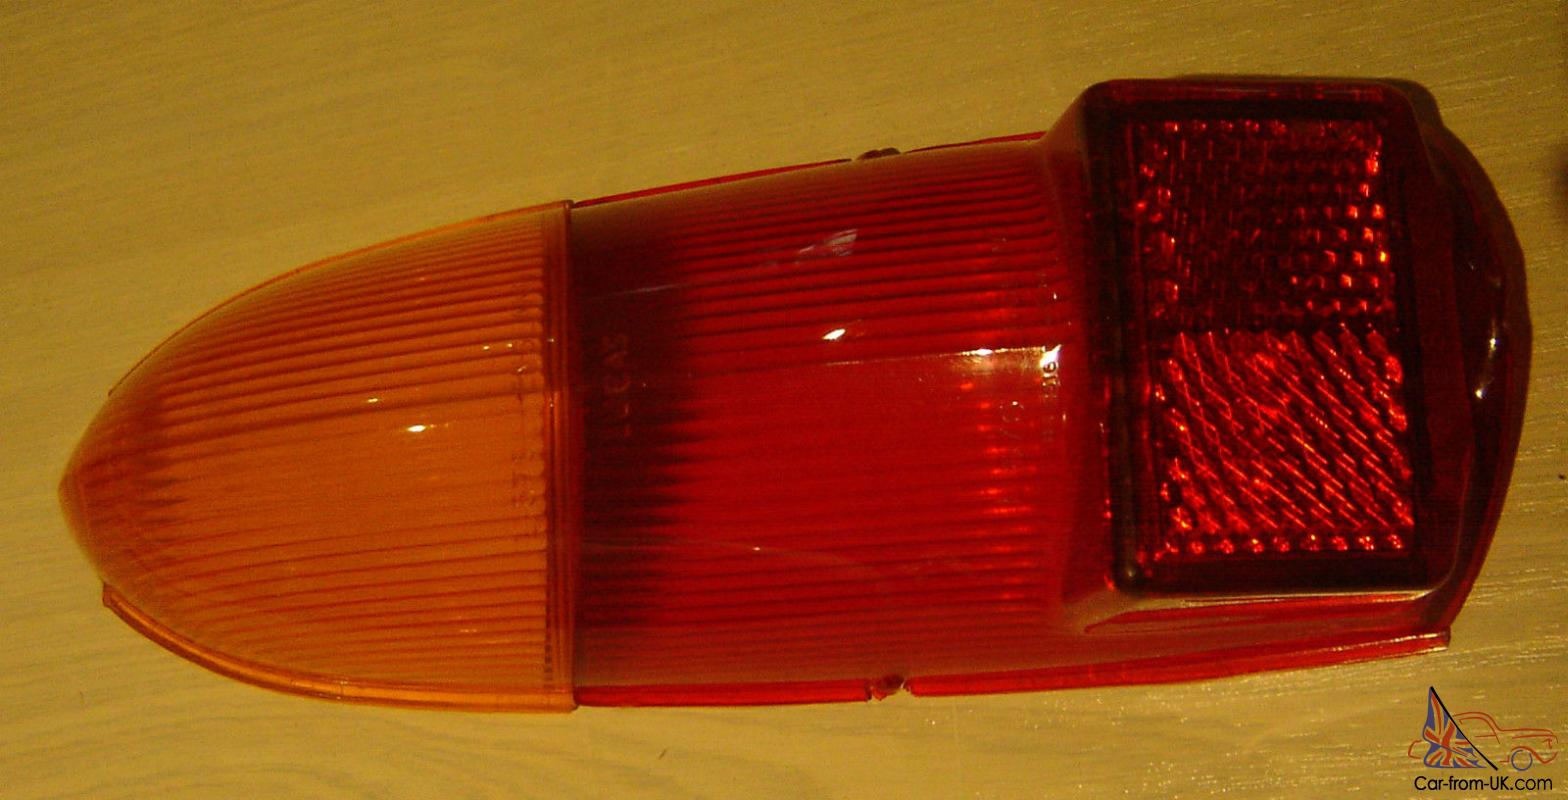 Newer Vehicle Tail Light Lenses : Morris car tail light lens new old stock approx s